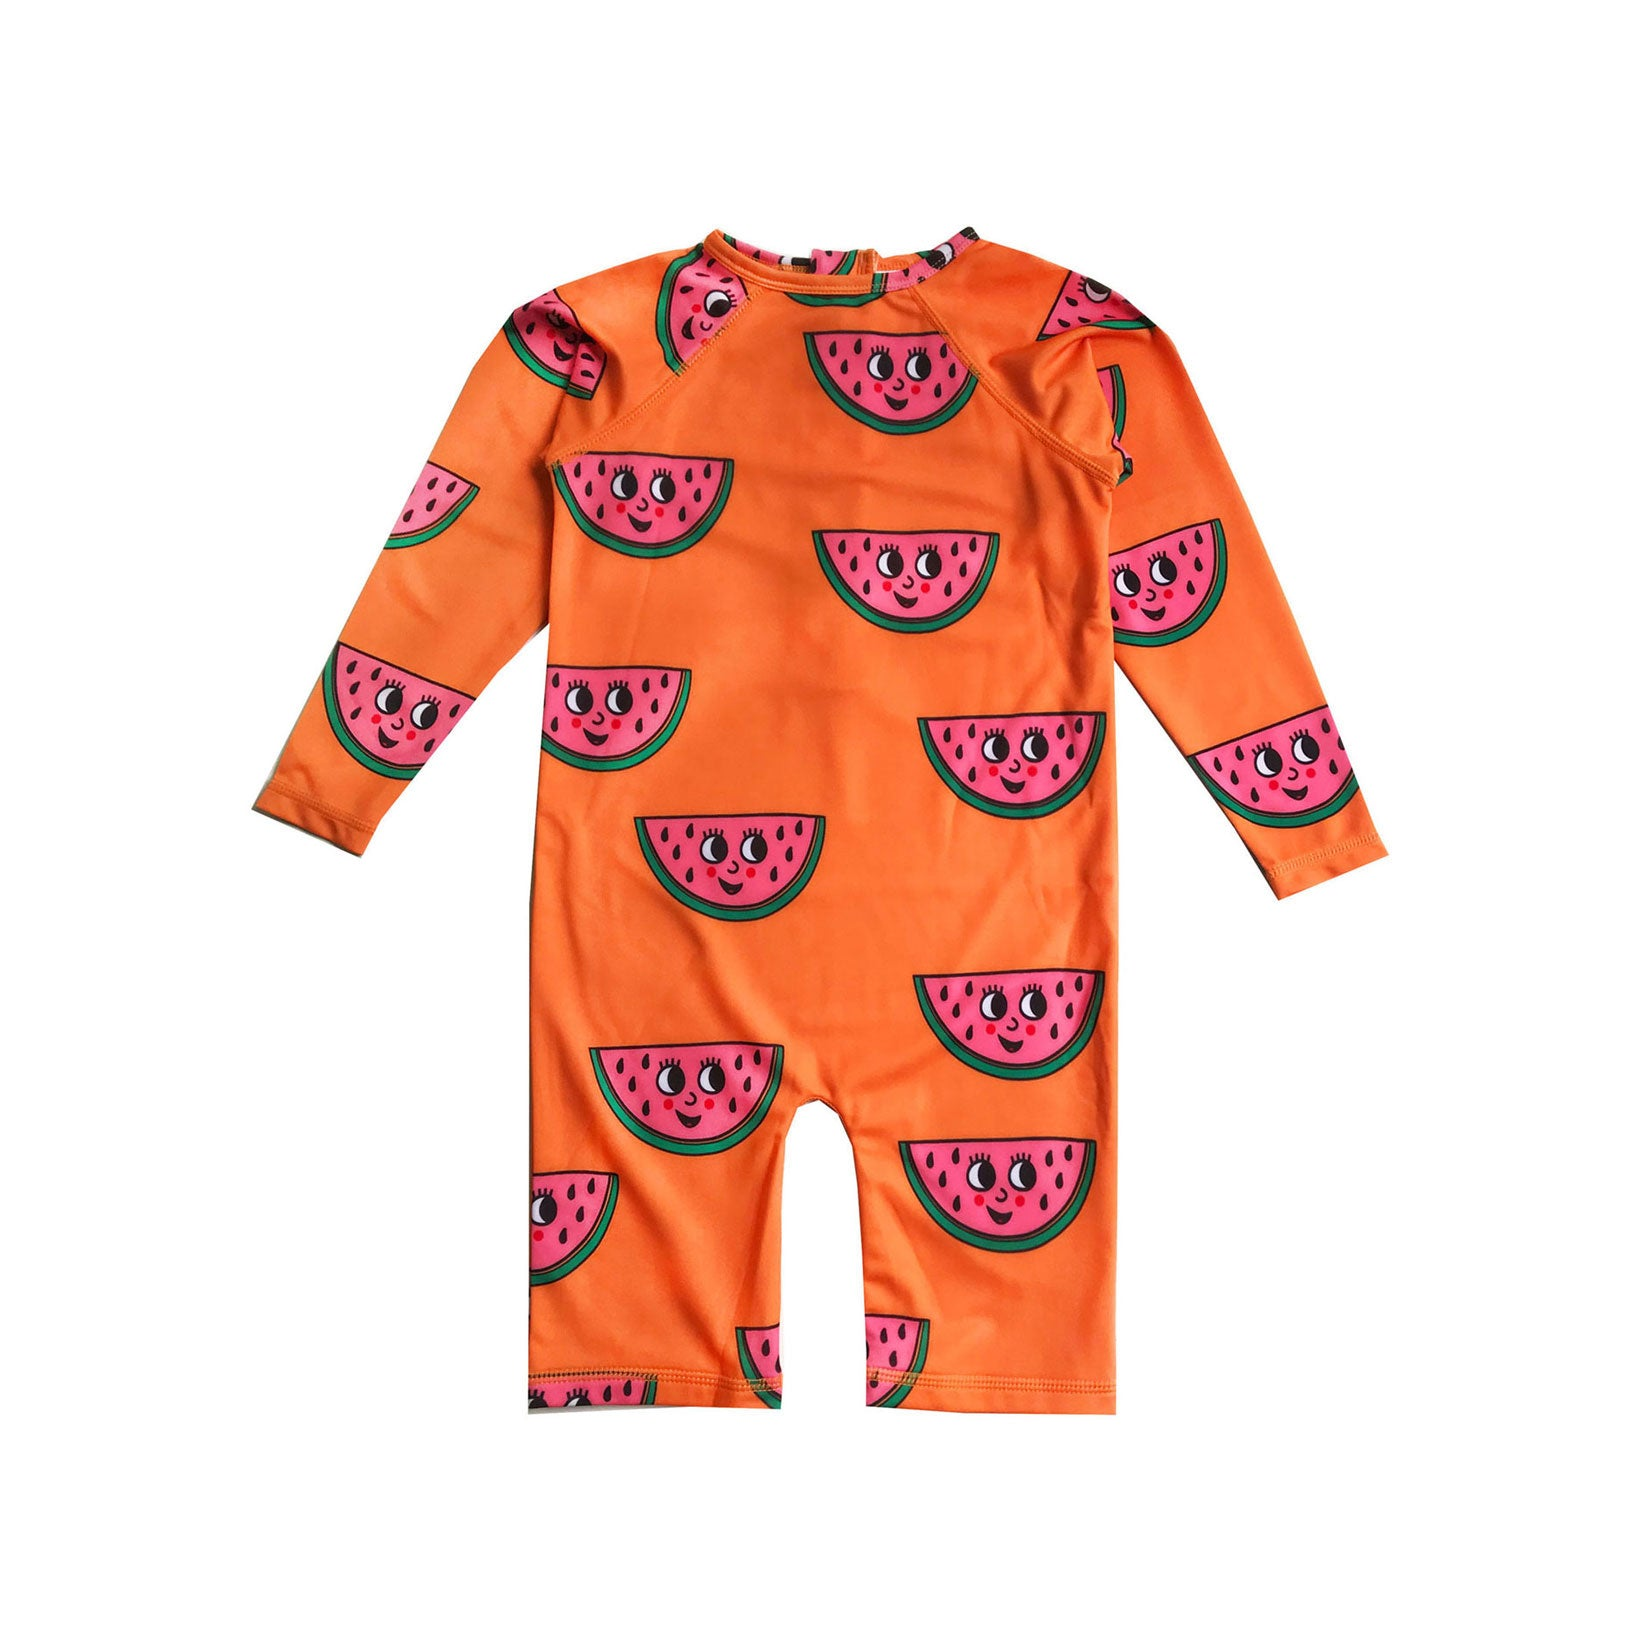 Hugo Loves Tiki Orange Watermelon Rashguard